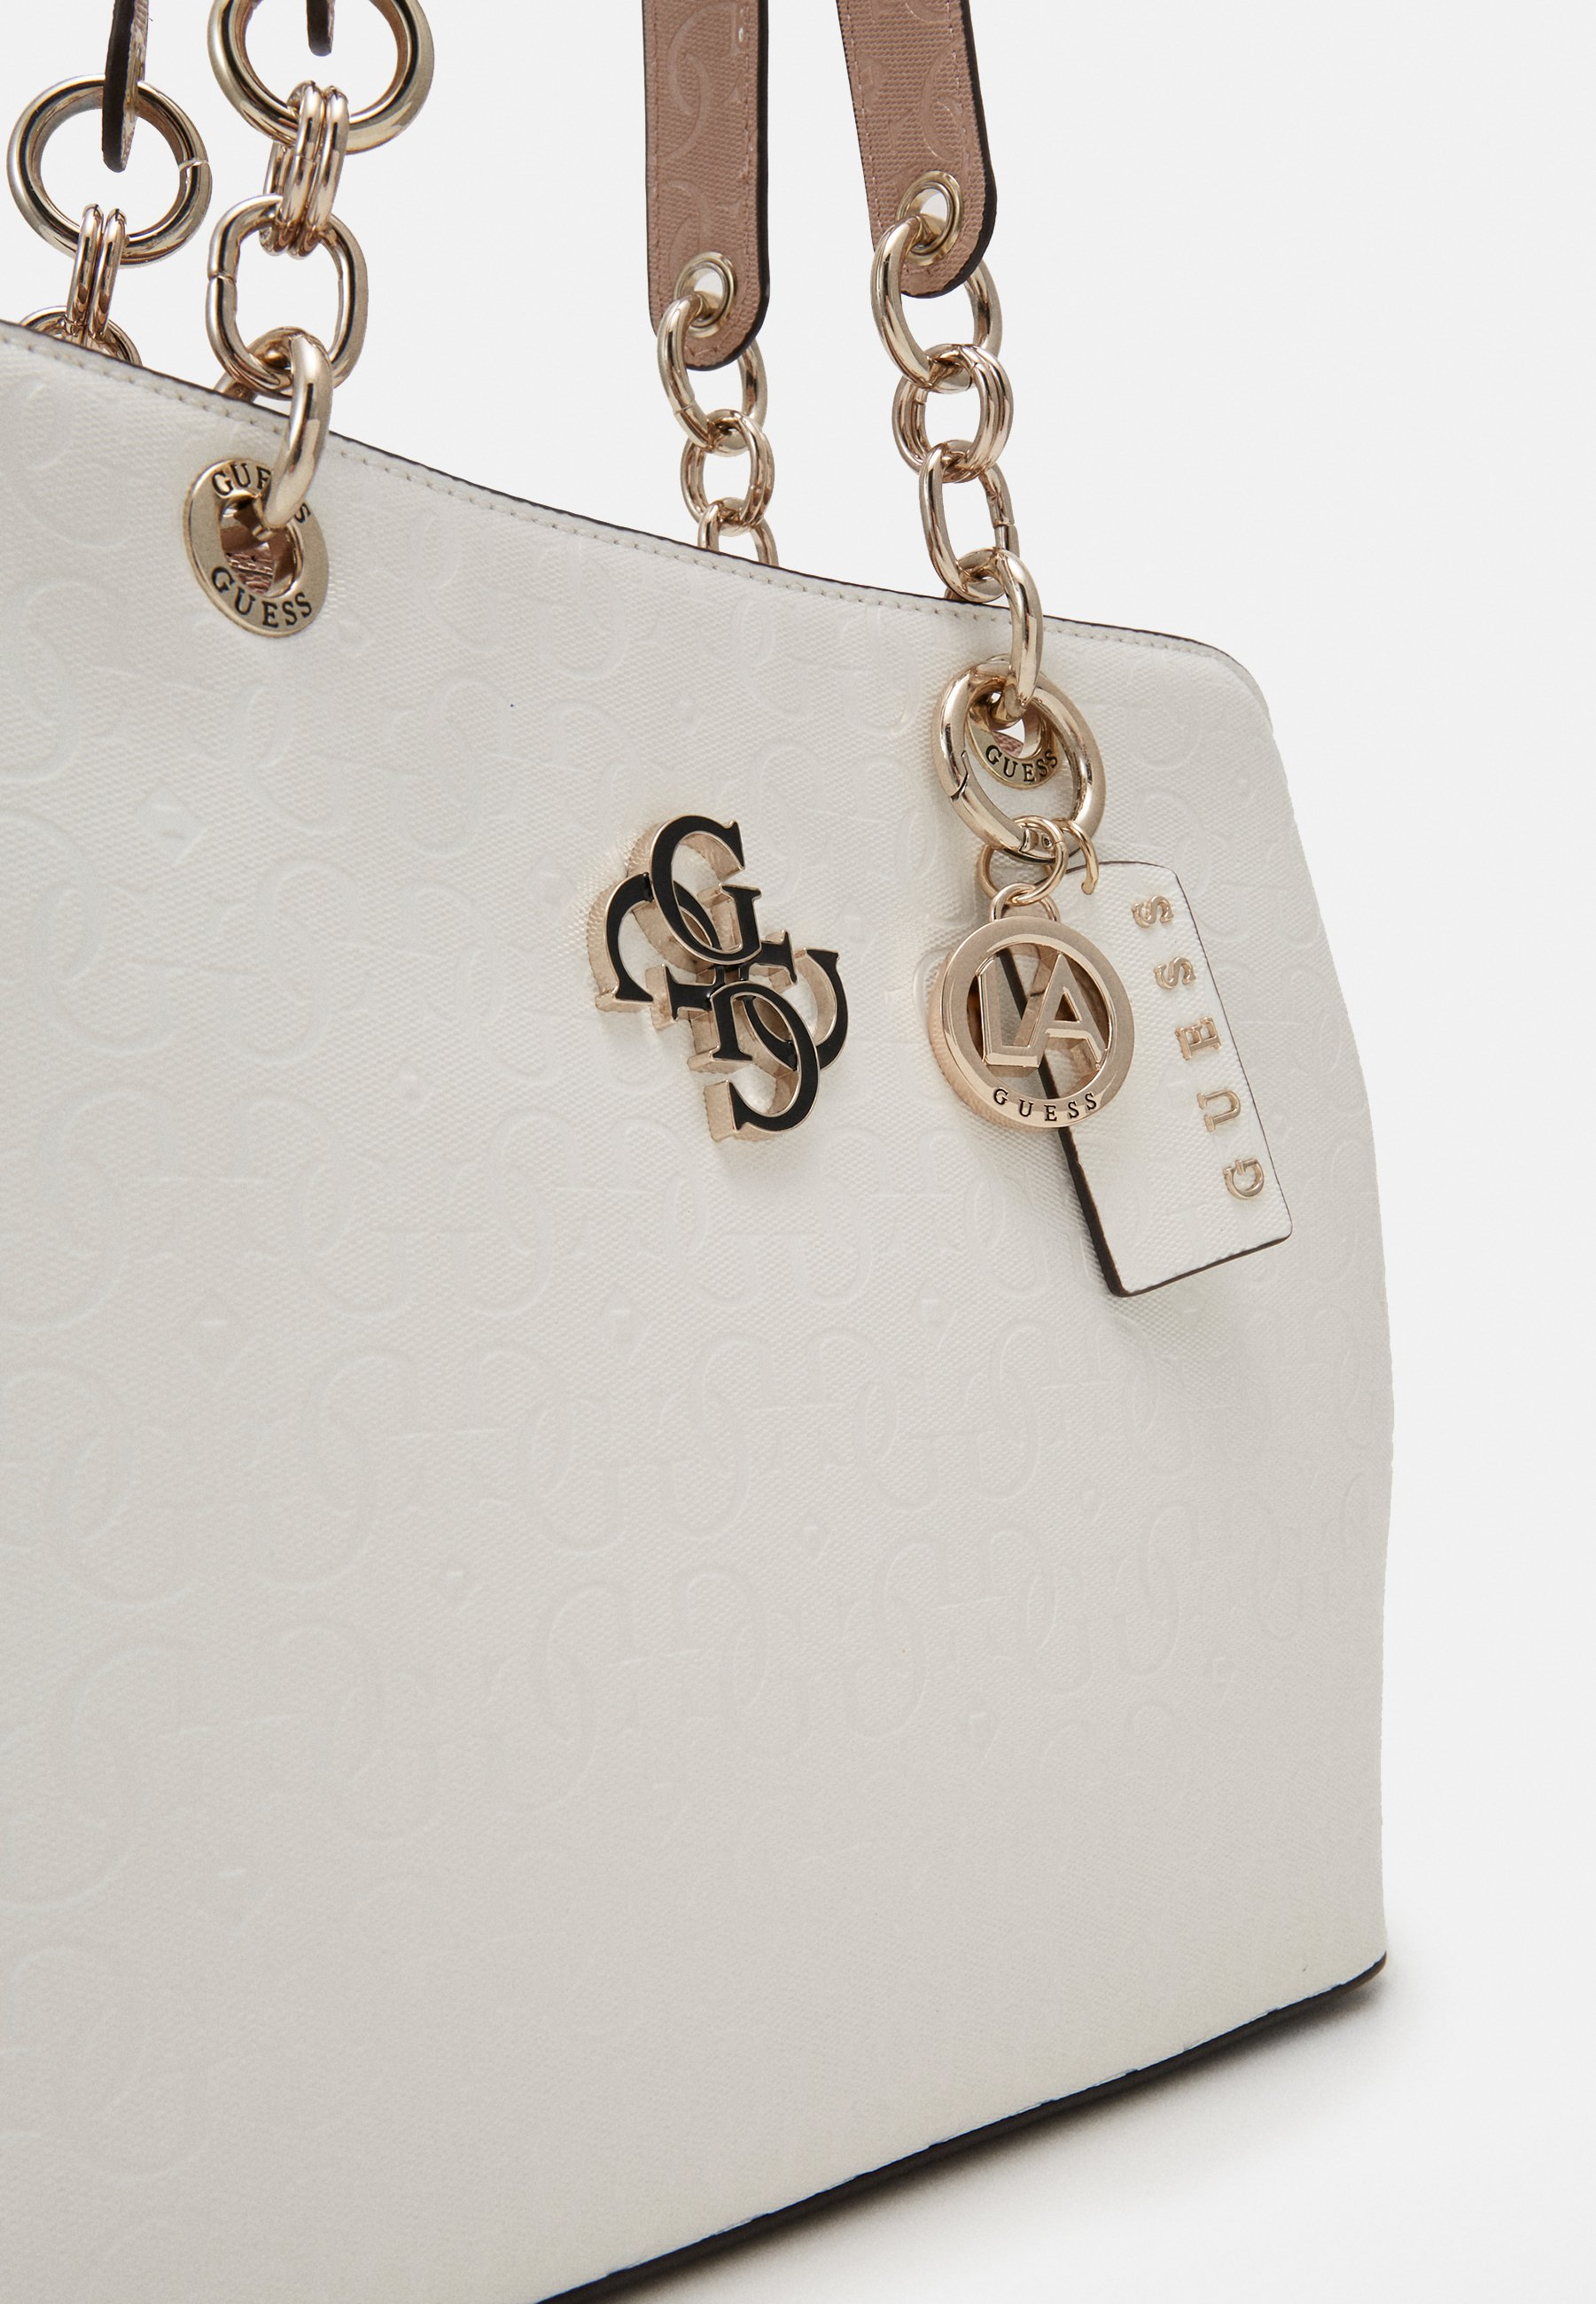 Guess Chic Shine - Handtasche White/multi/weiß